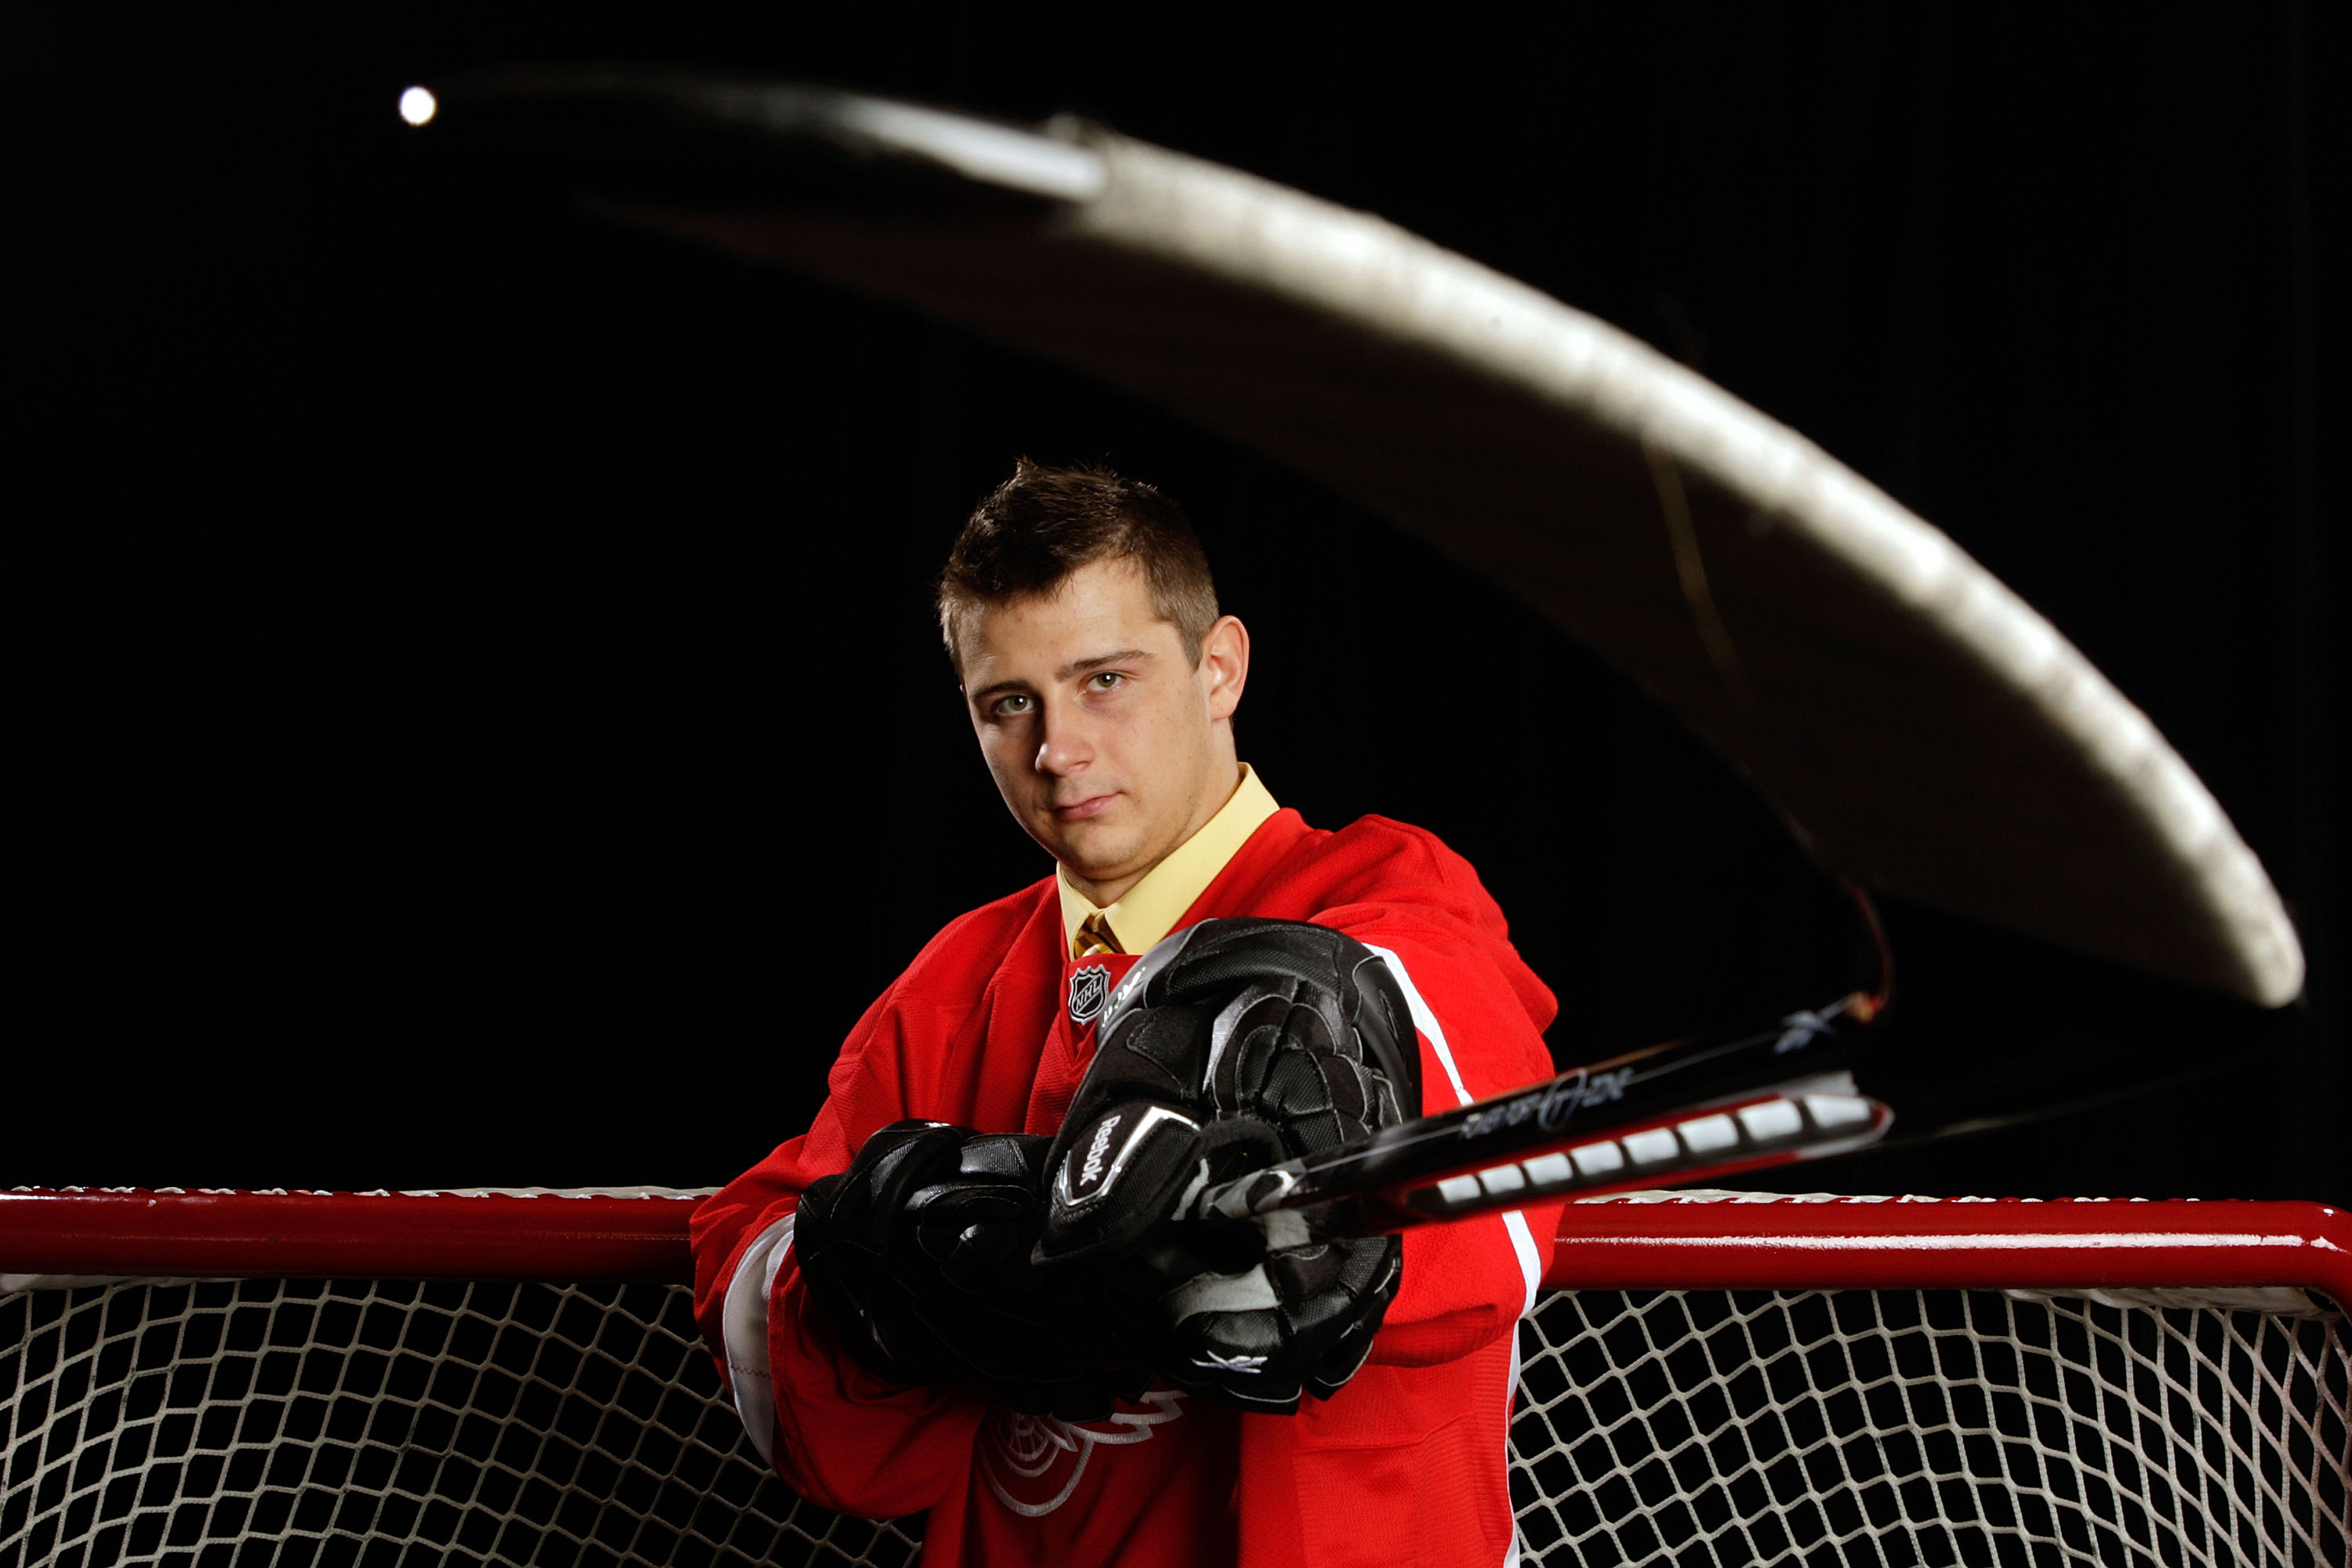 MONTREAL, QC - JUNE 27:  Tomas Tatar of the Detroit Red Wings poses for a portrait during the 2009 NHL Entry Draft at the Bell Centre on June 26, 2009 in Montreal, Quebec, Canada.  (Photo by Jamie Squire/Getty Images)